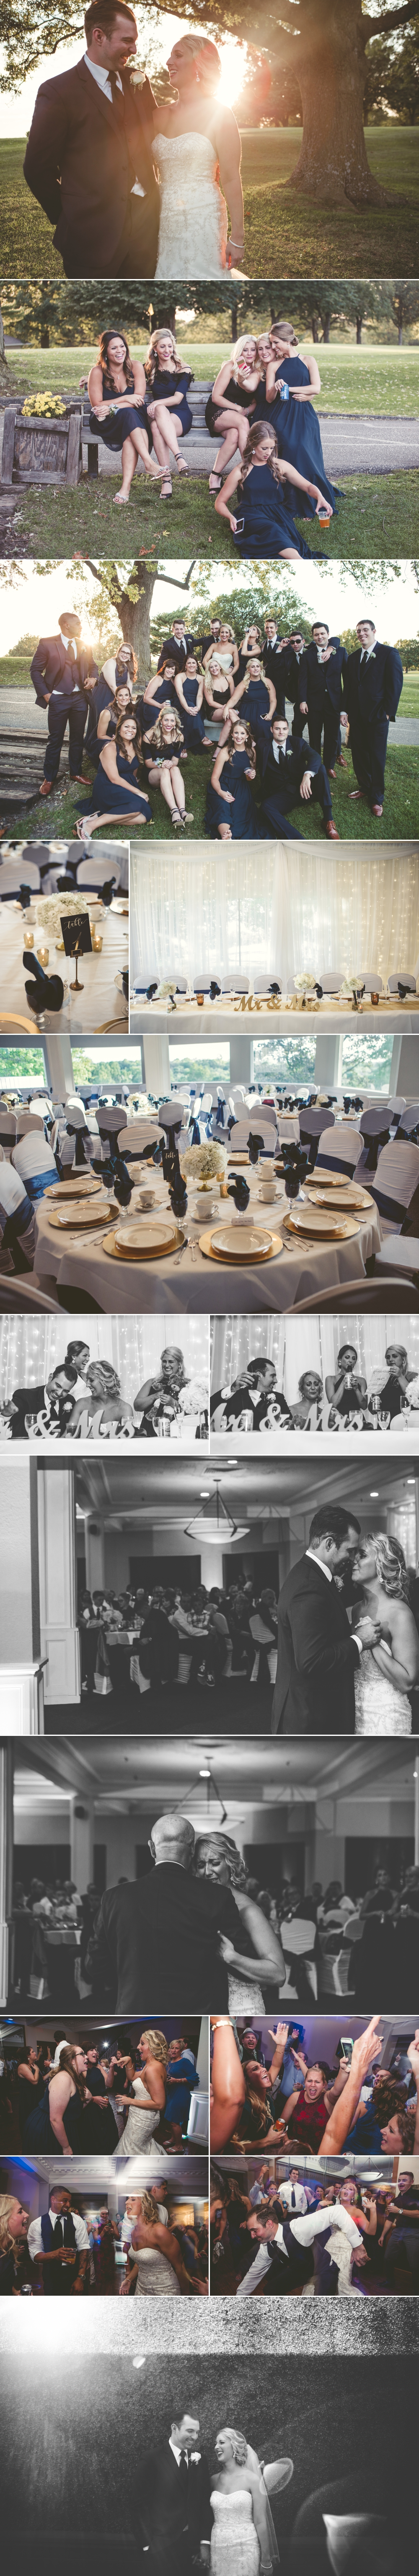 jason_domingues_photography_best_kansas_city_photographer_kc_weddings_hillcrest_country_club0003.JPG